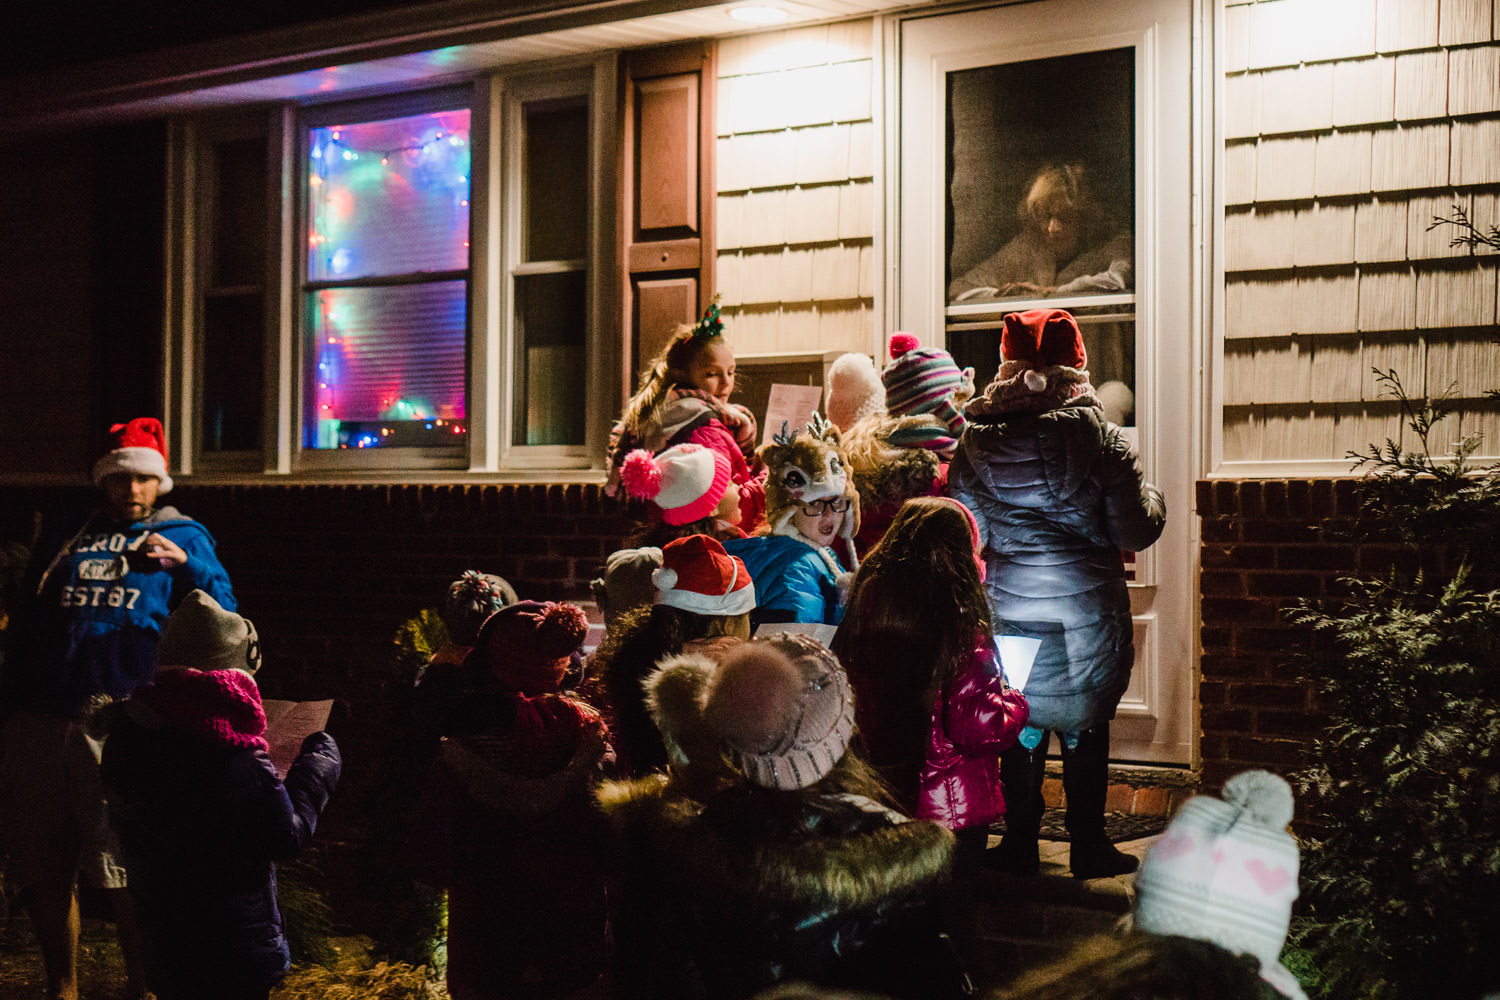 A girl scout troop sings Christmas carols on a front porch.